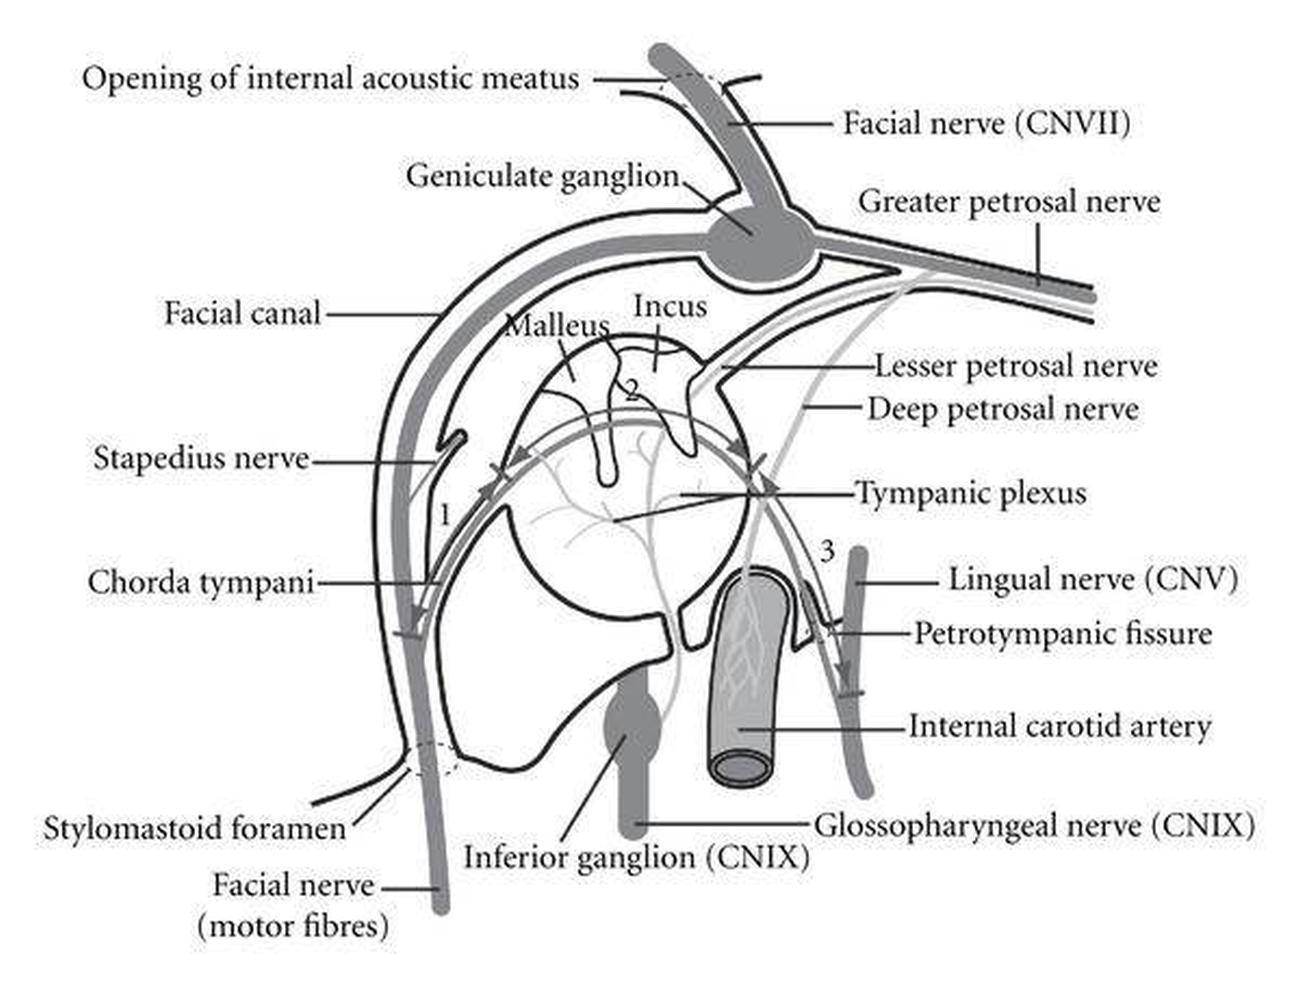 Pictures Of Chorda Tympani Nerve